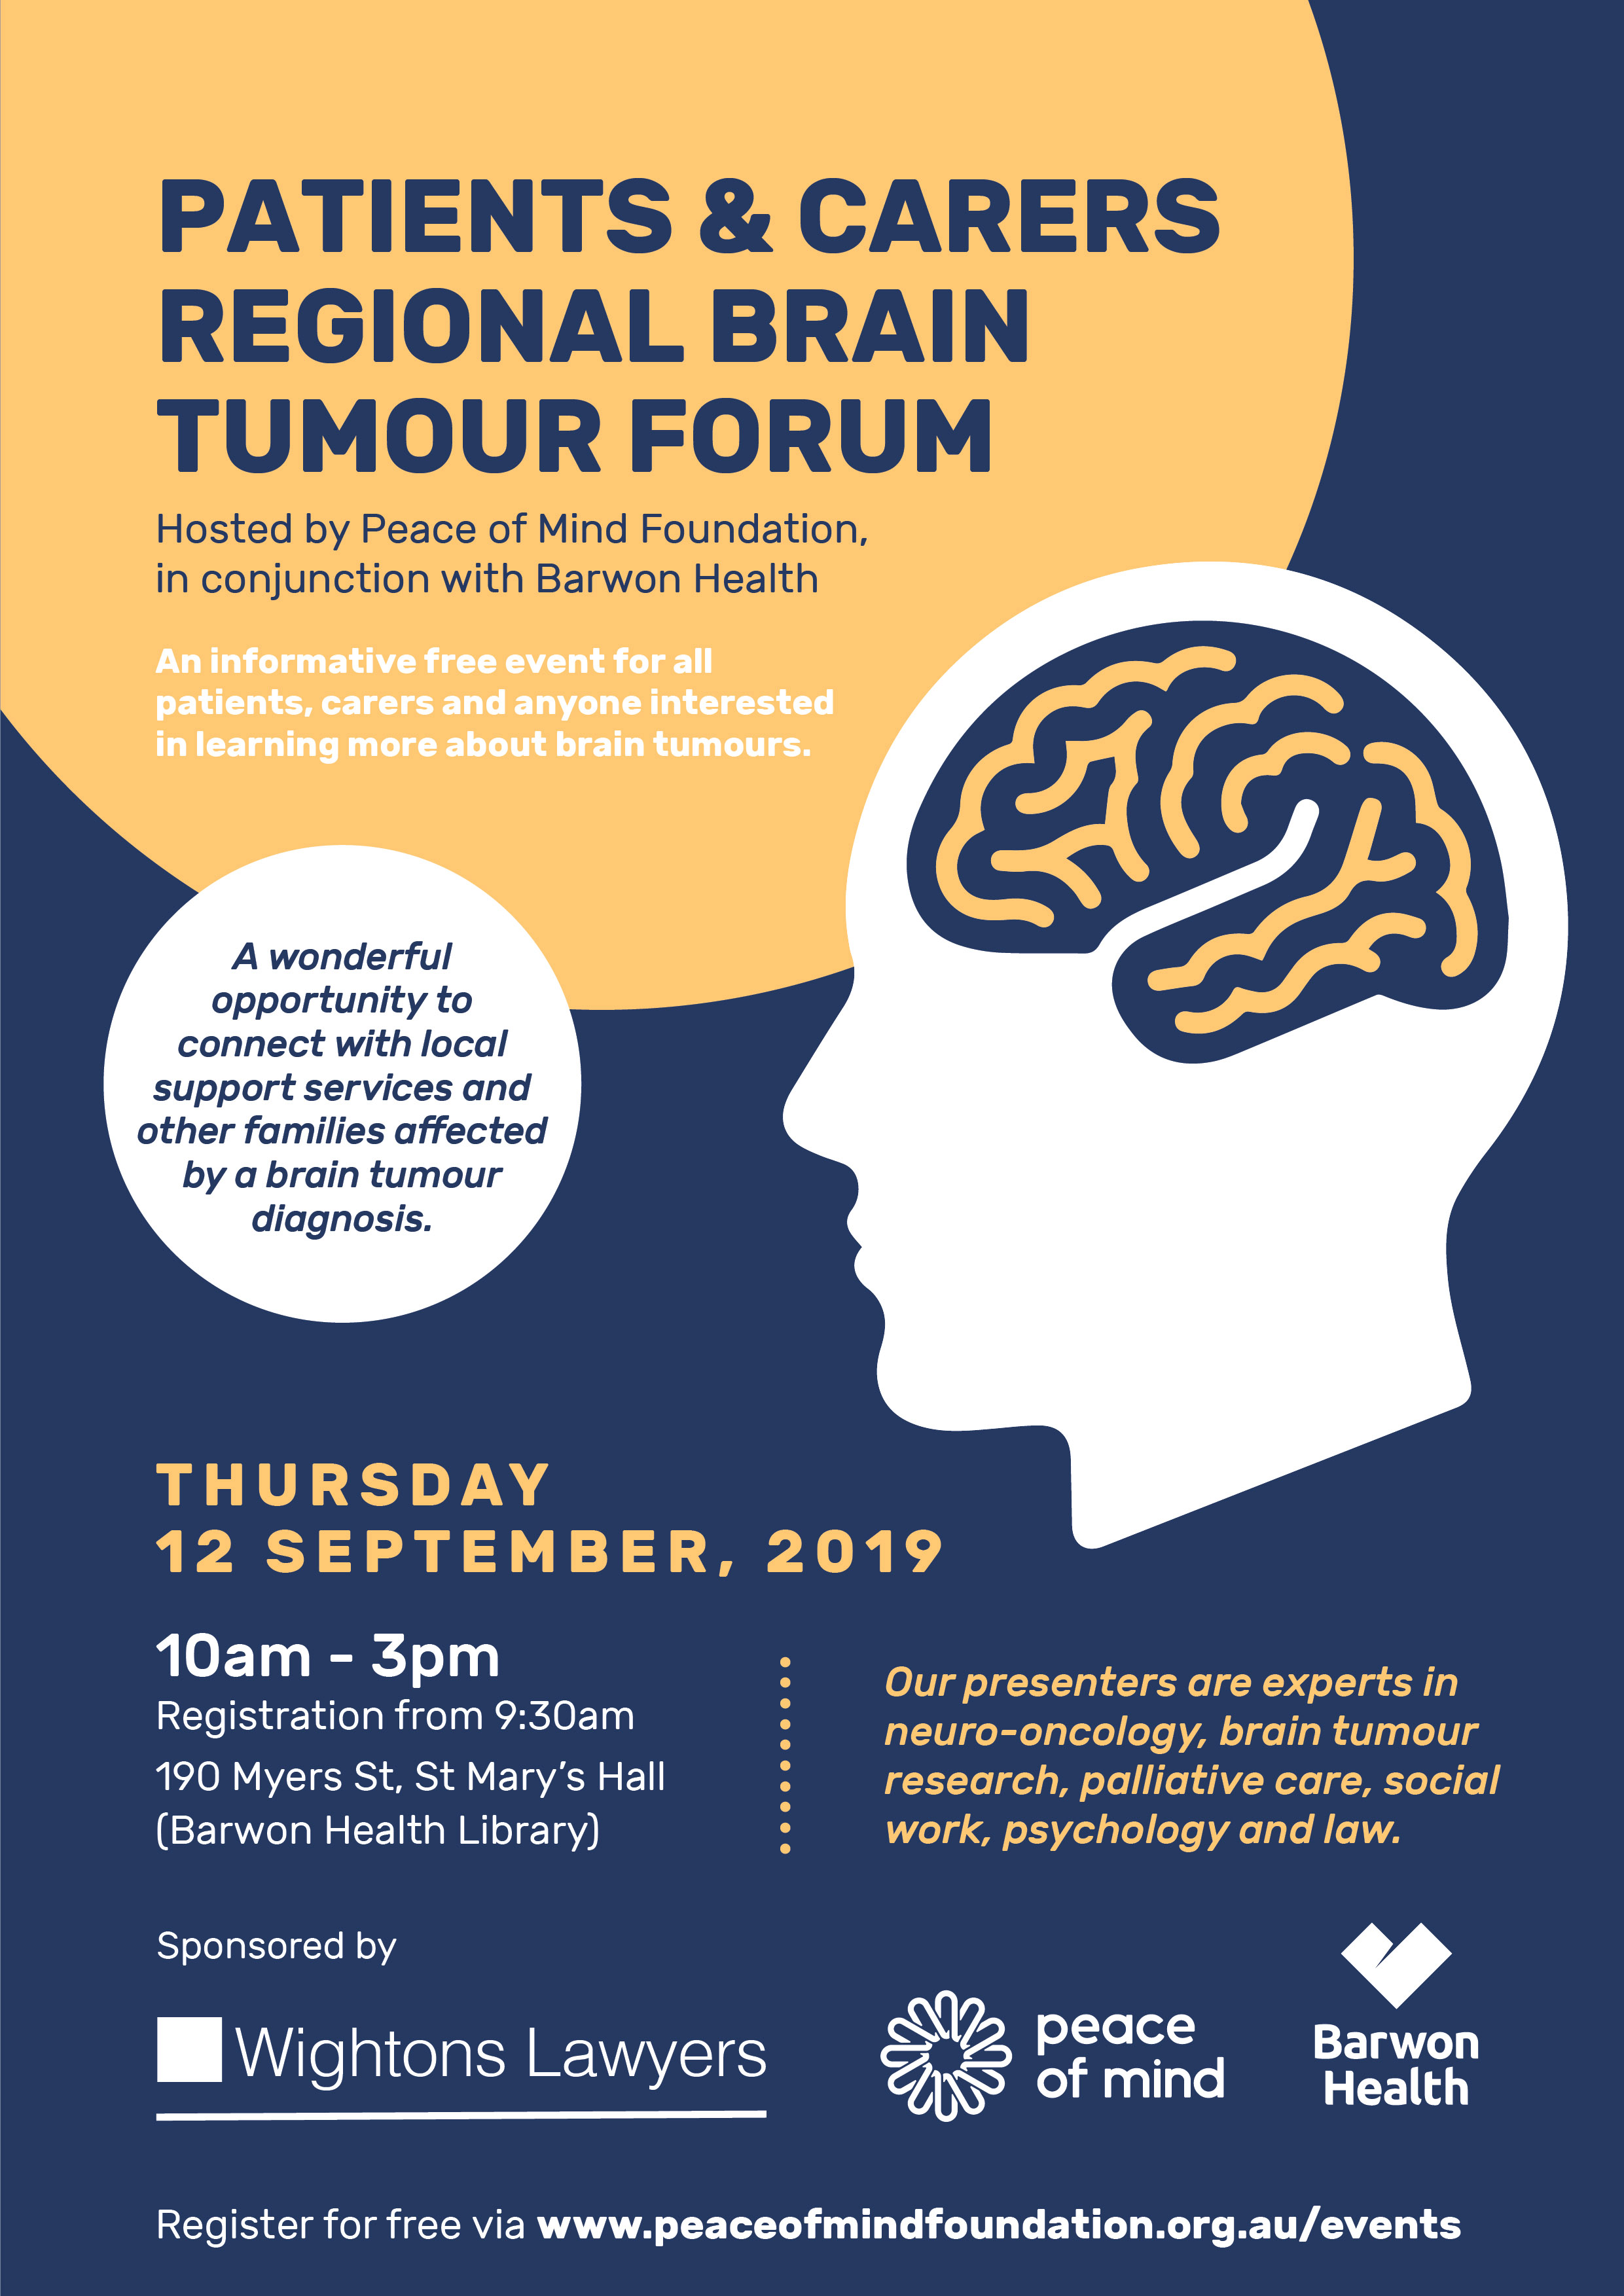 Brain Tumour Forum flyer 2019.jpg